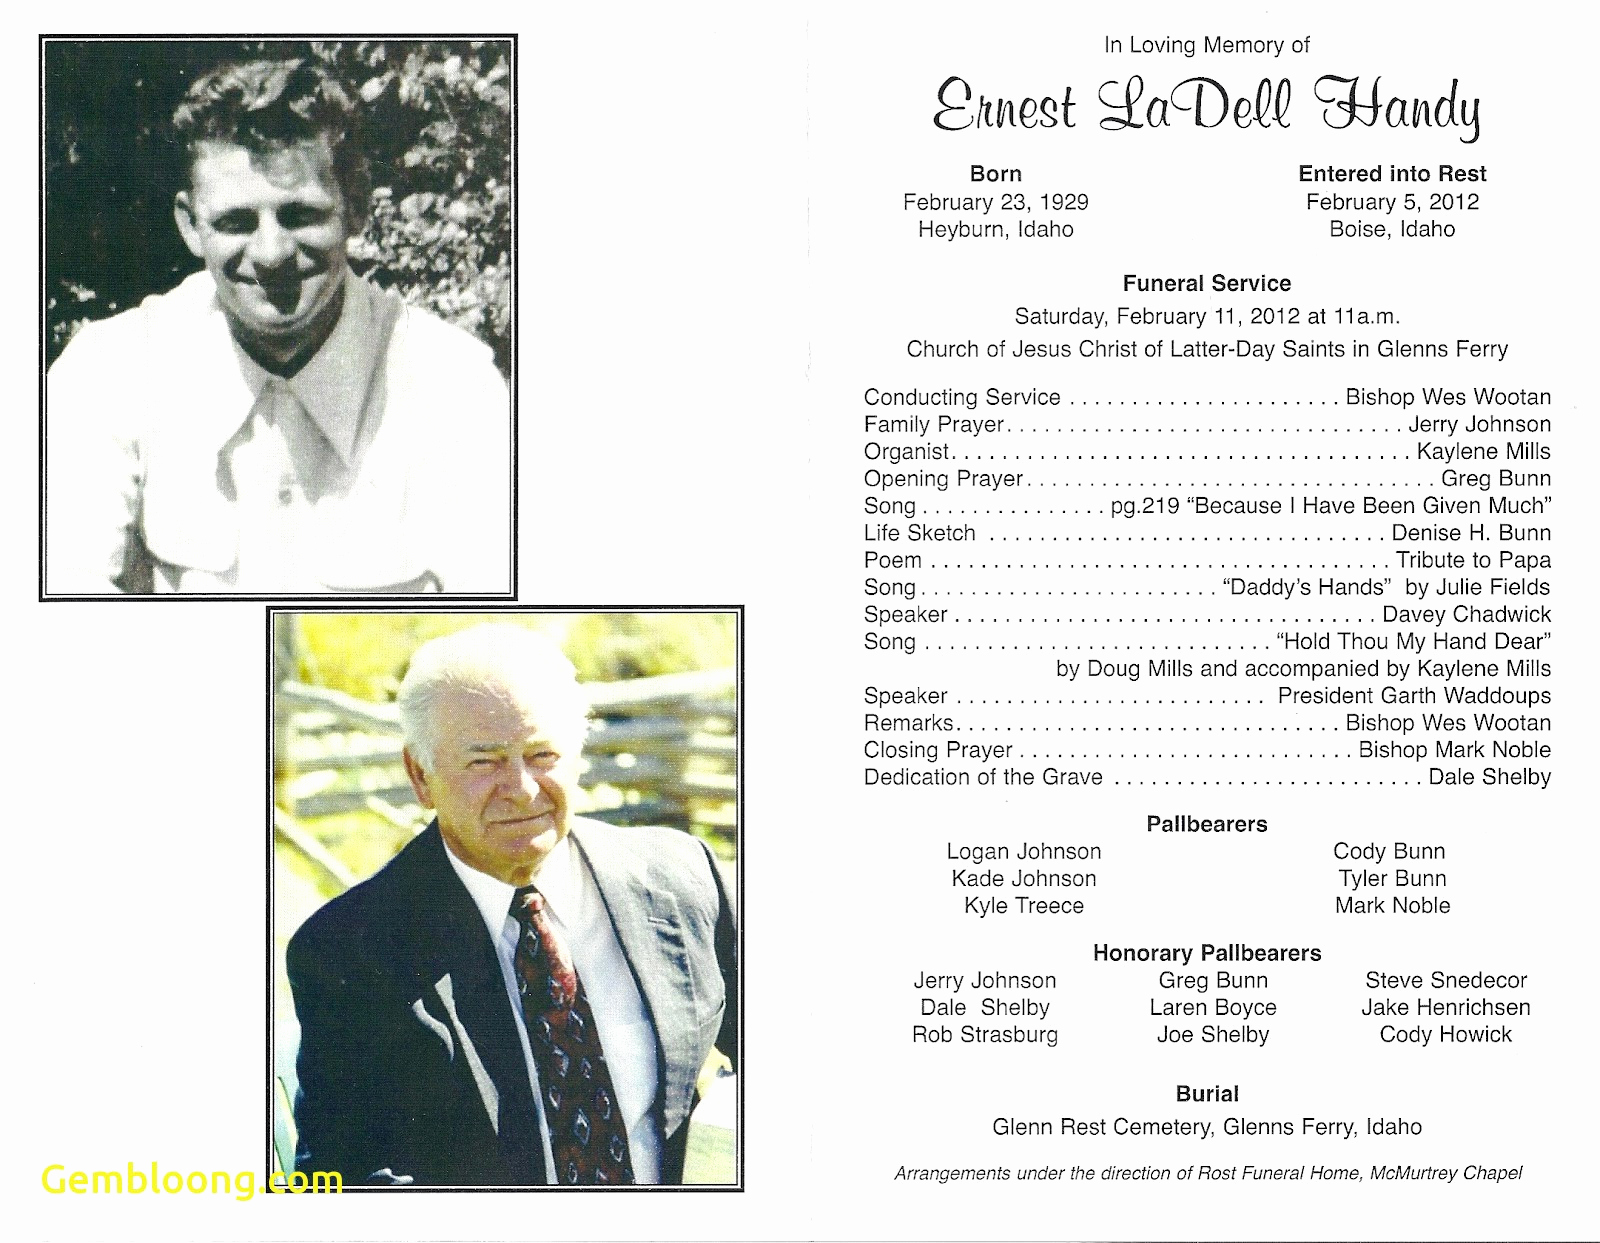 obituary guide template - free editable obituary templates word pdf daily roabox